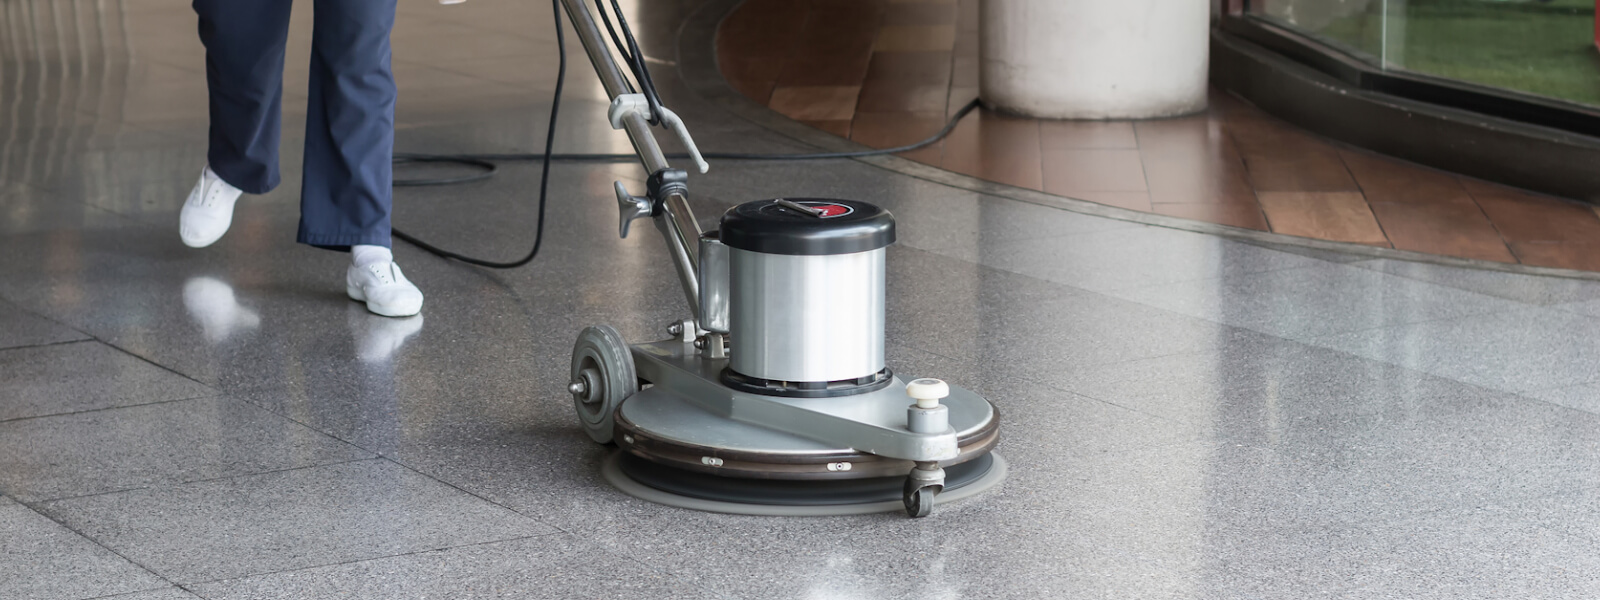 Experts in Cleaning Services